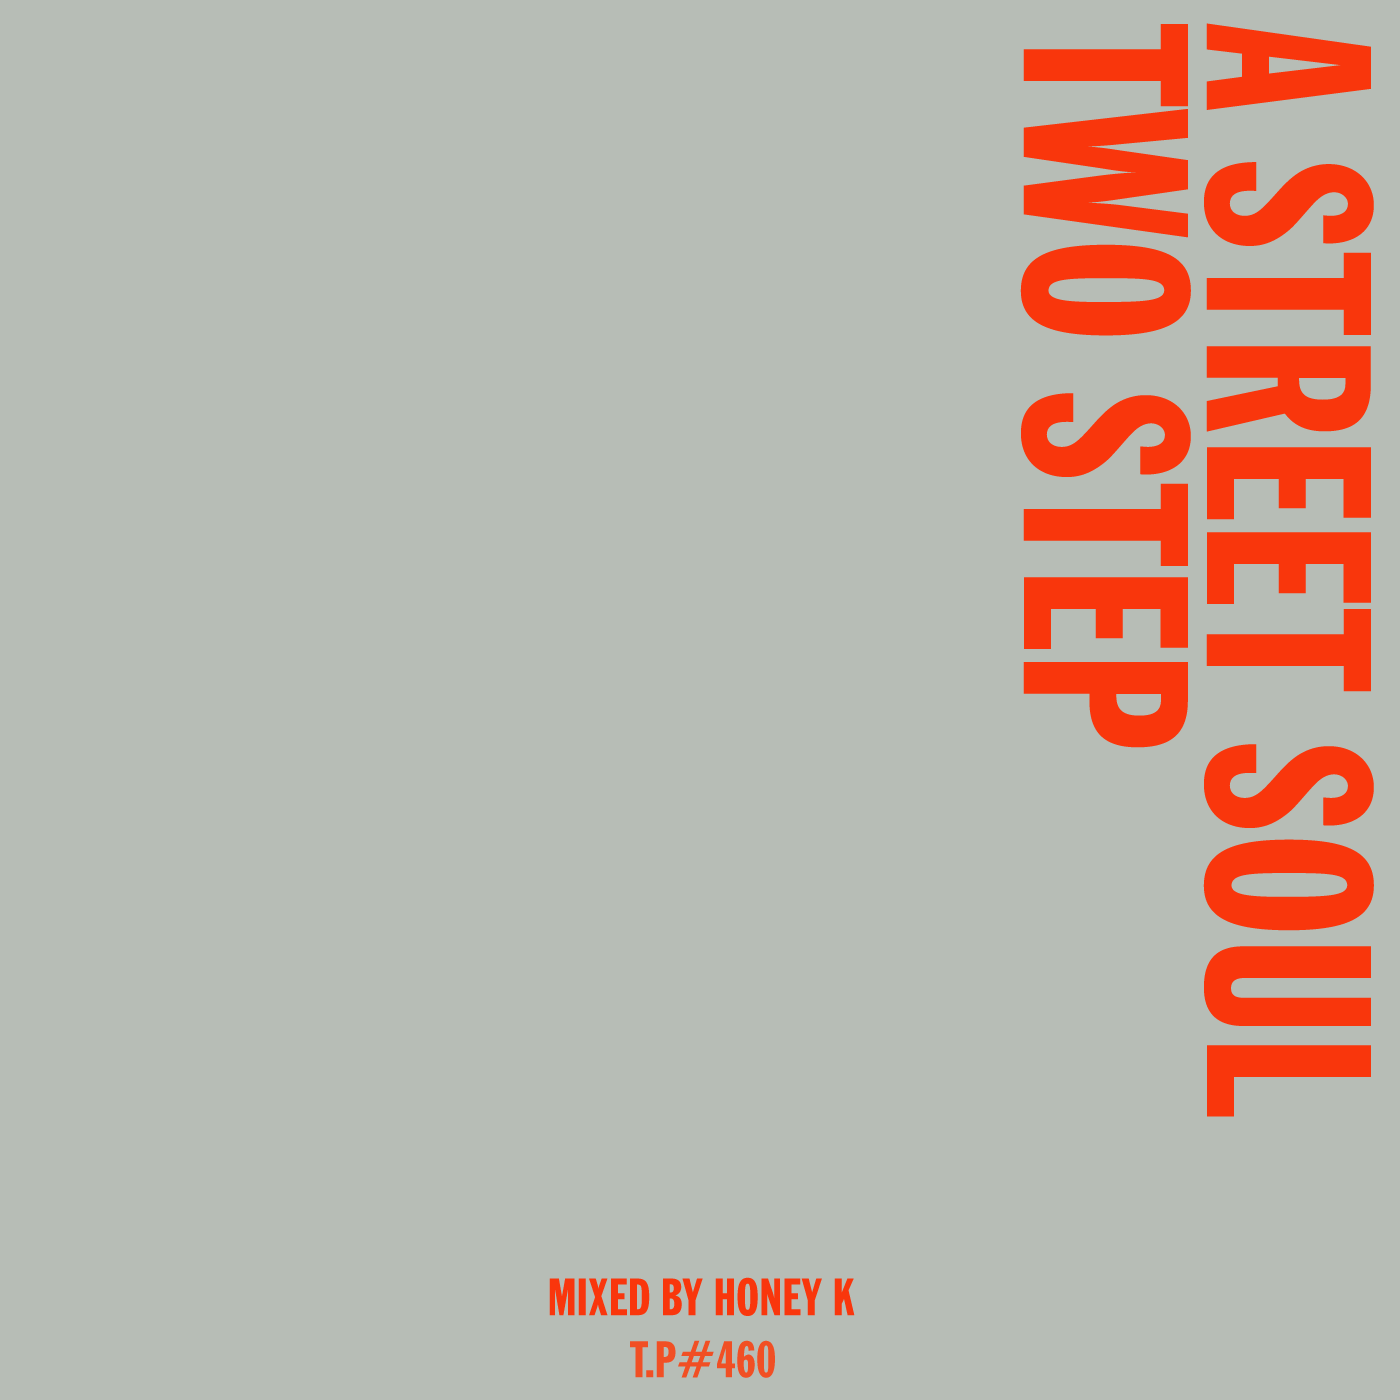 Honey K, Street Soul, 2 Step, London, Manchester, Vibes, Caron Wheeler, Hits, Bangers, Bass, Voice, Soul